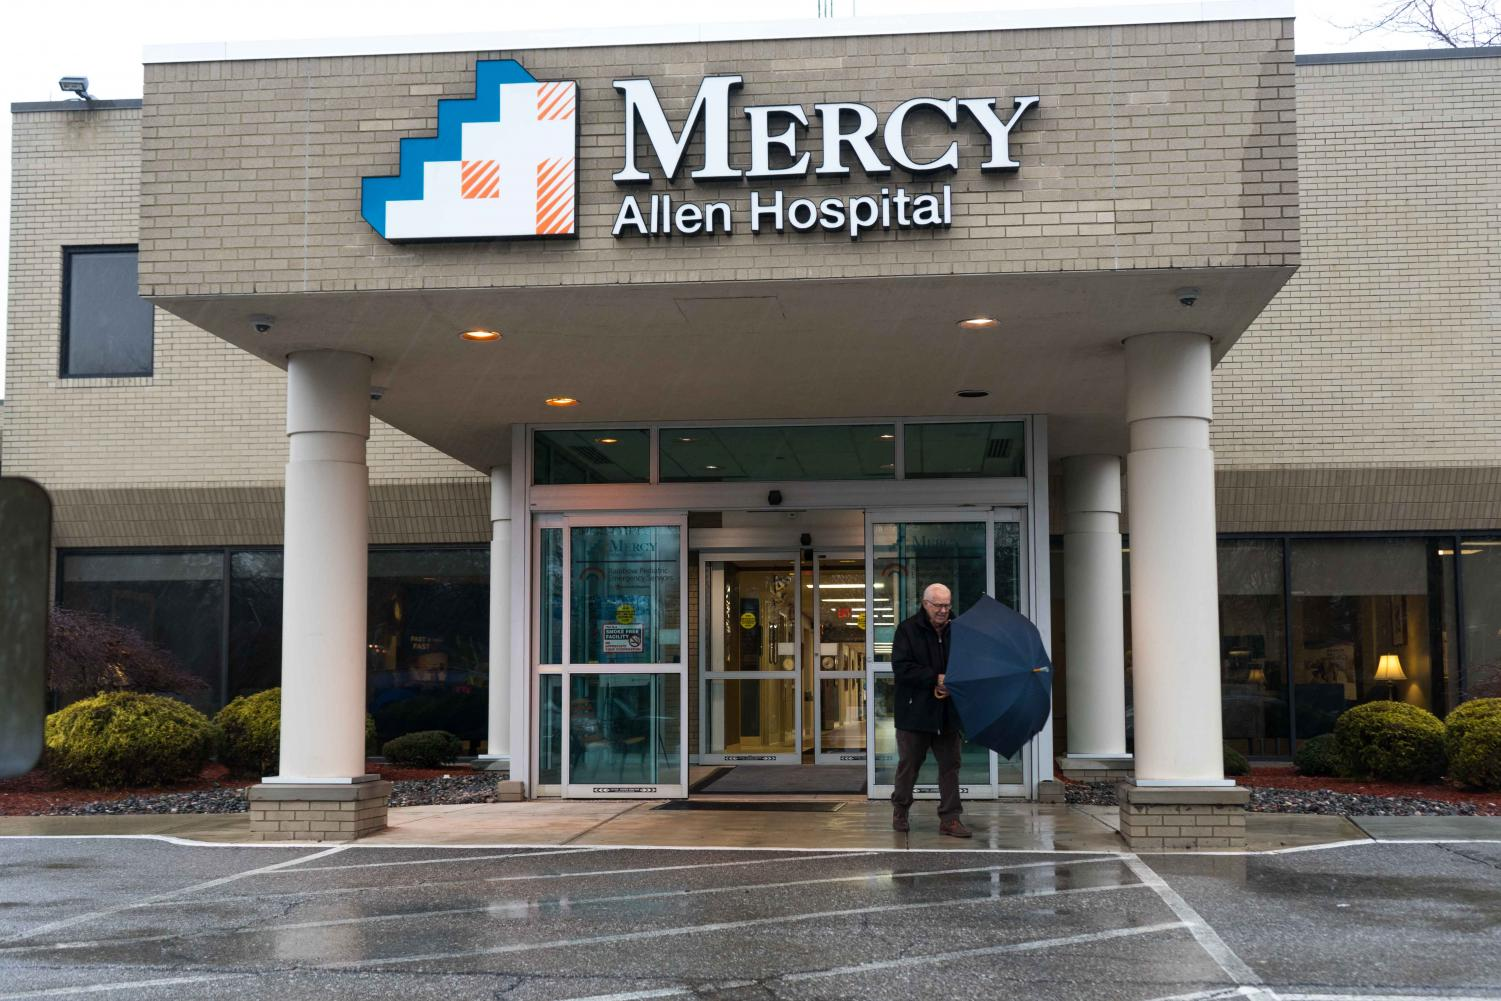 Oberlin's Mercy Allen Hospital, a Mercy Health affiliate, will be merging with the second largest hospital network in Ohio: Bon Secours.